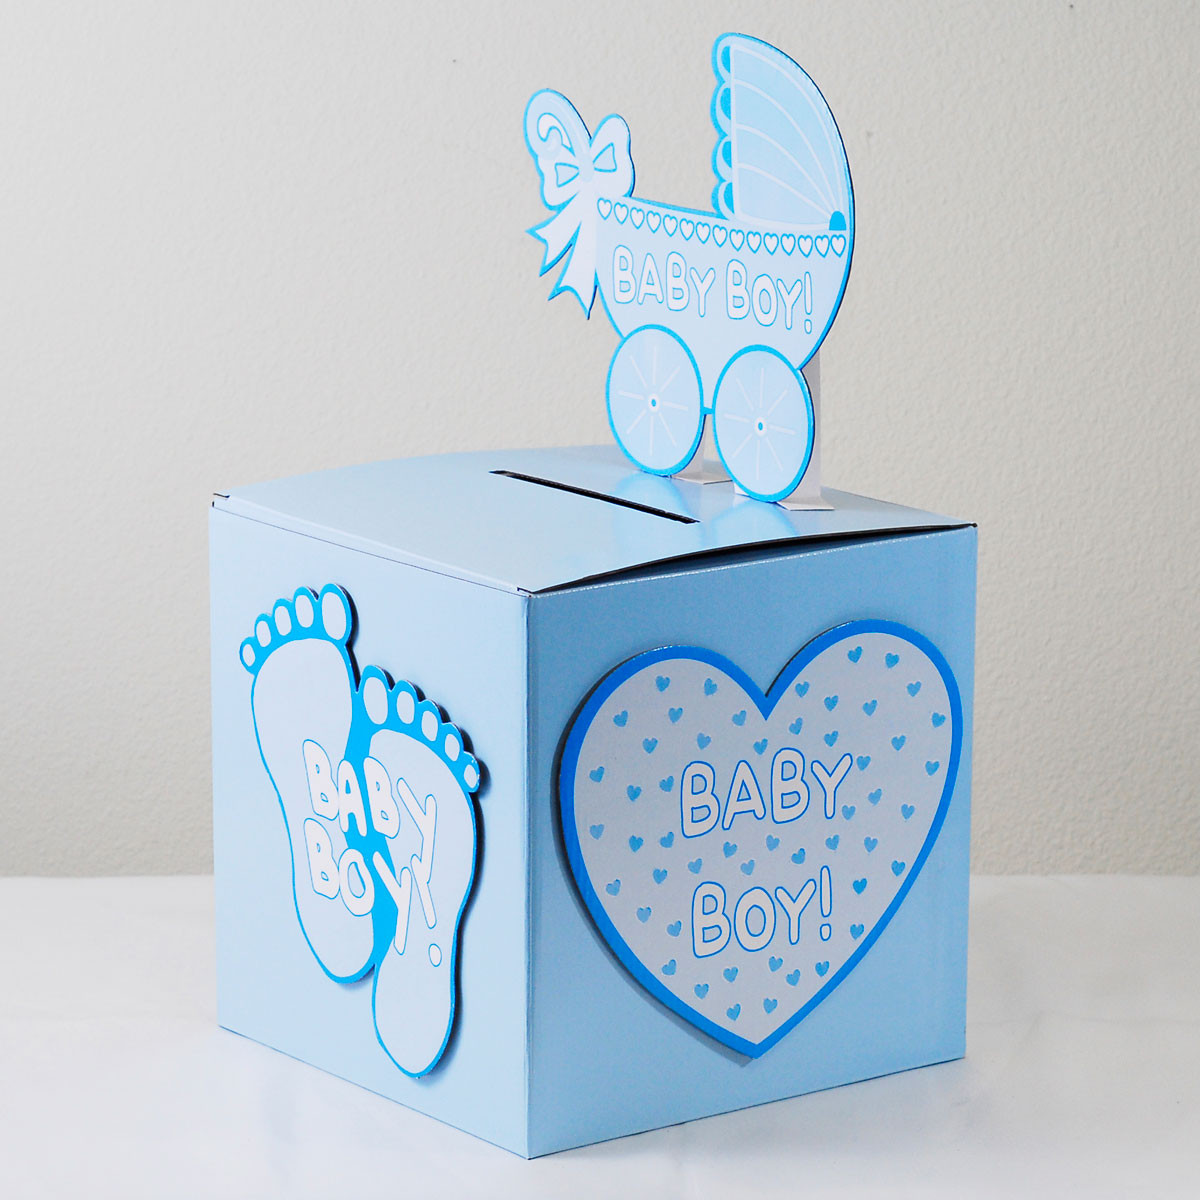 Best ideas about Baby Shower Gift Box Ideas . Save or Pin Baby Shower Gift Card Box Ideas • Baby Showers Ideas Now.